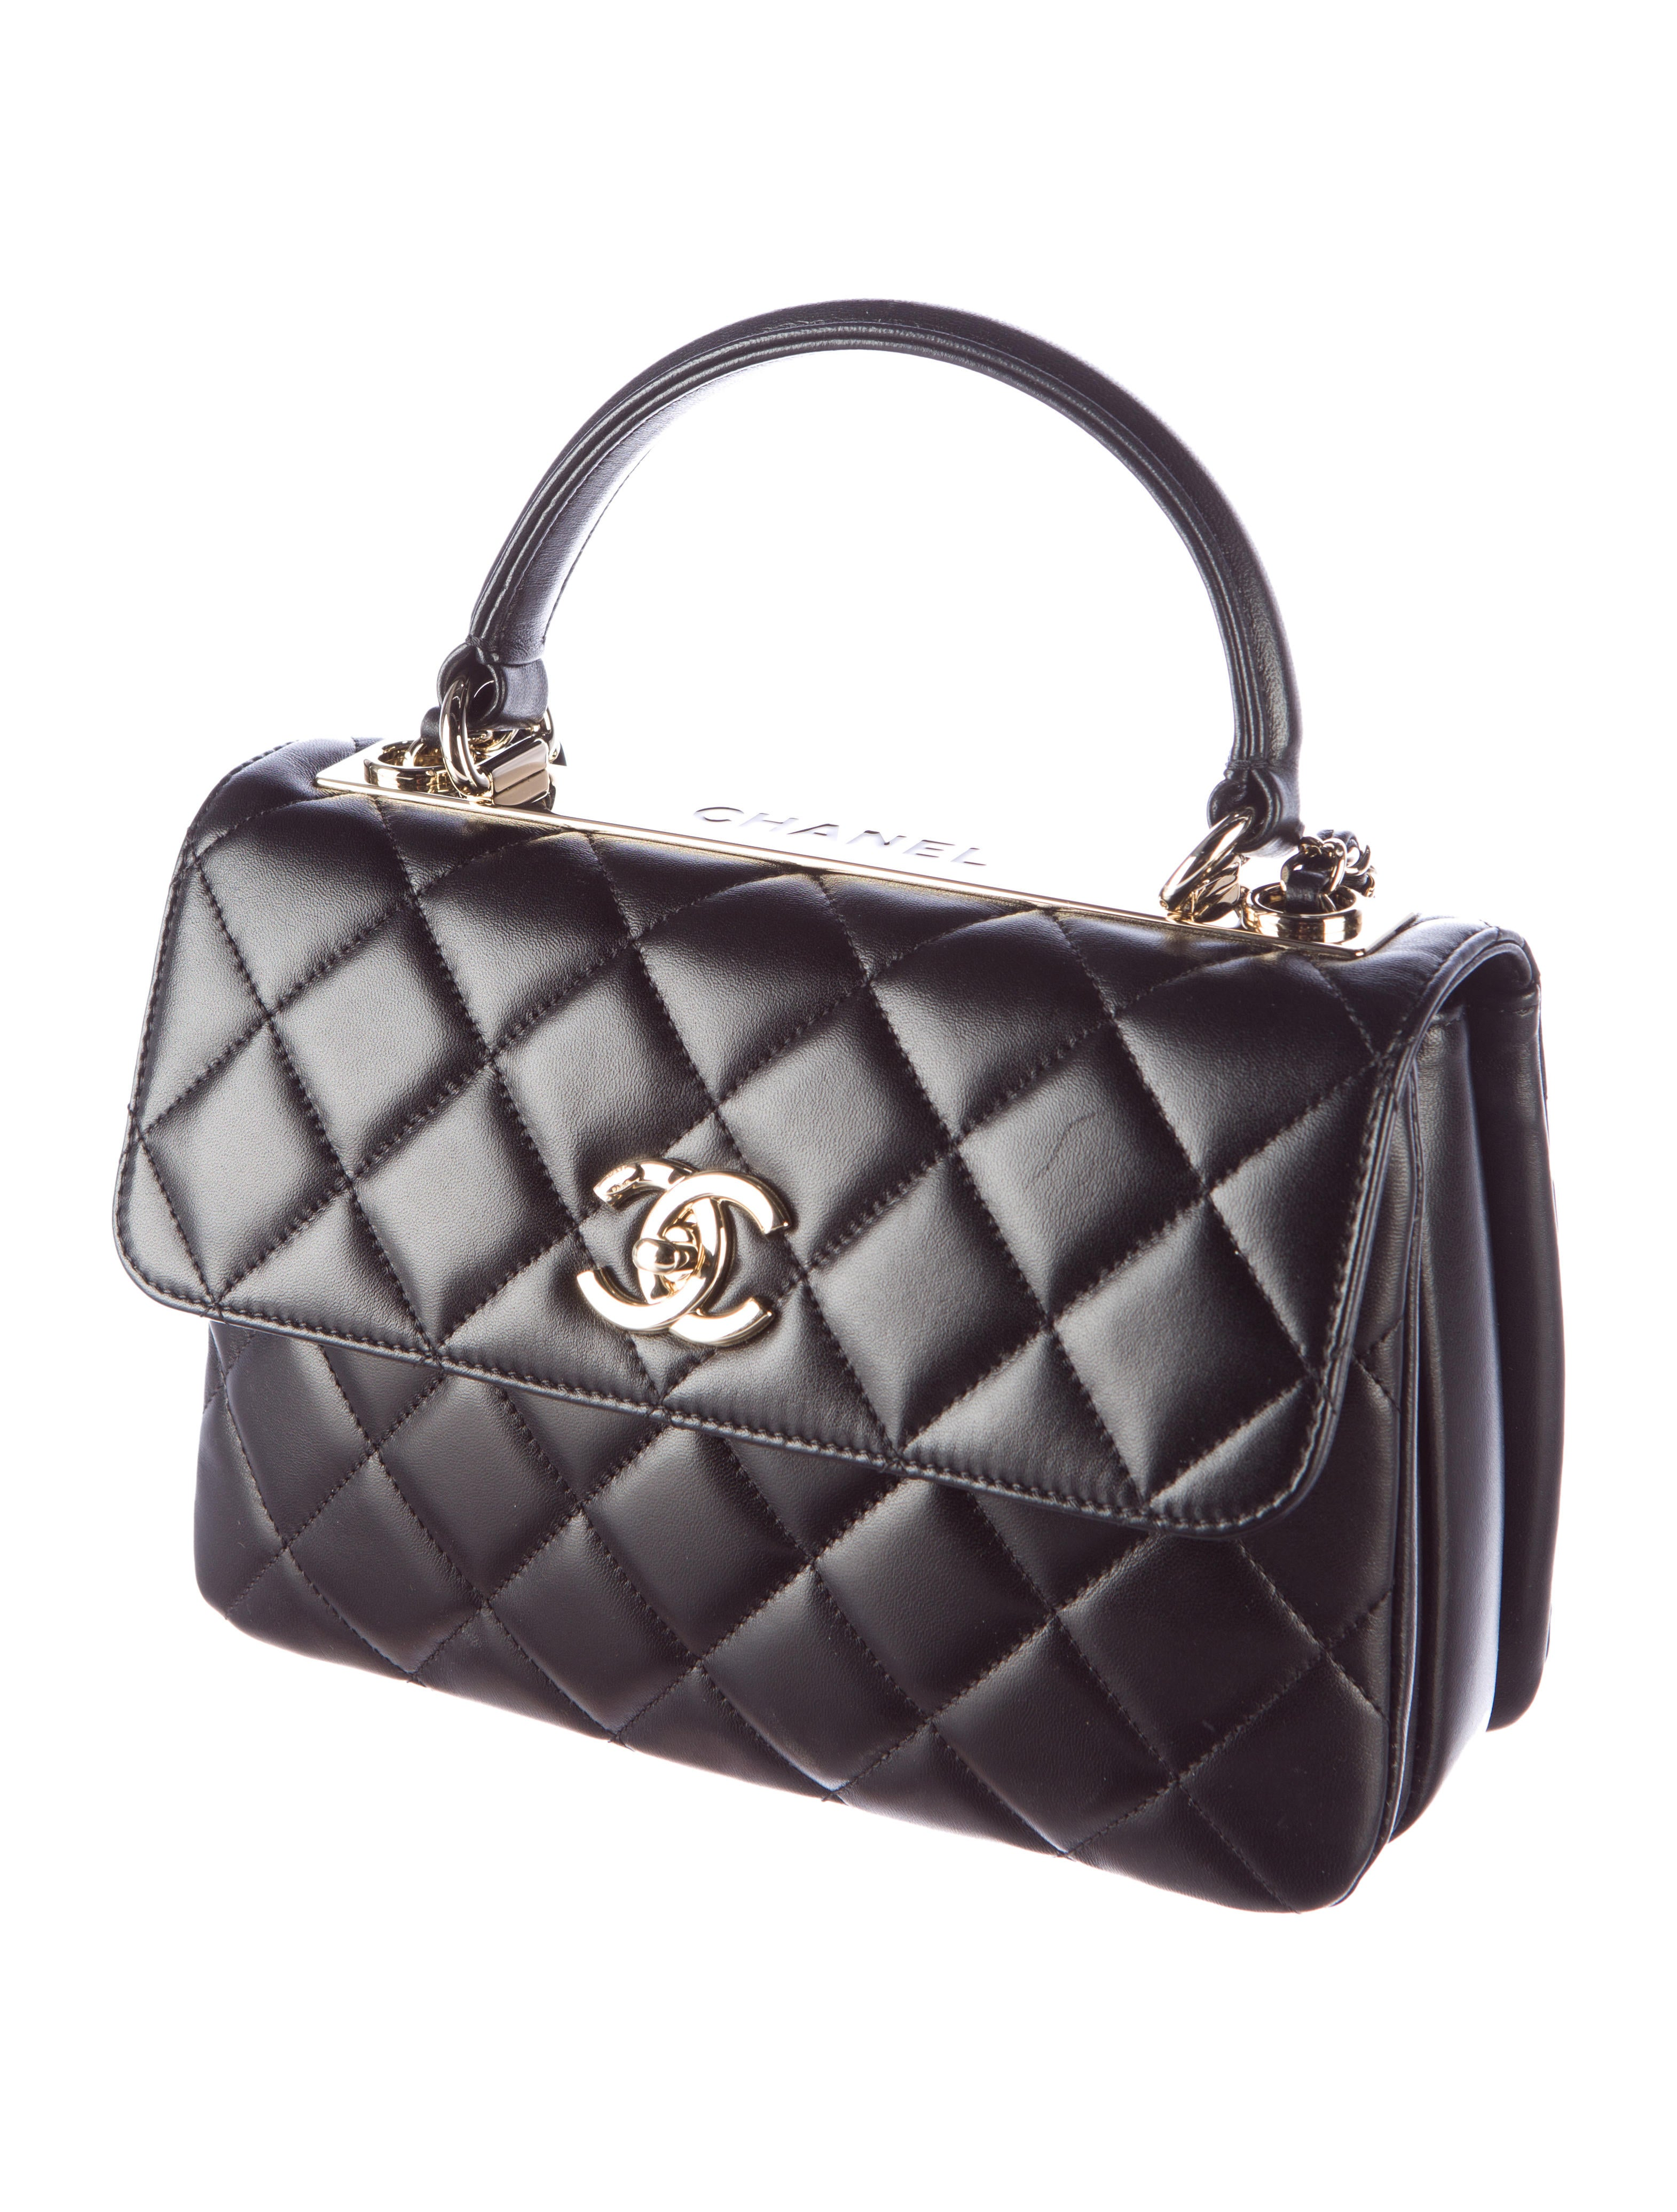 2471deca9d7514 Chanel Trendy Cc Bag Price | Stanford Center for Opportunity Policy ...